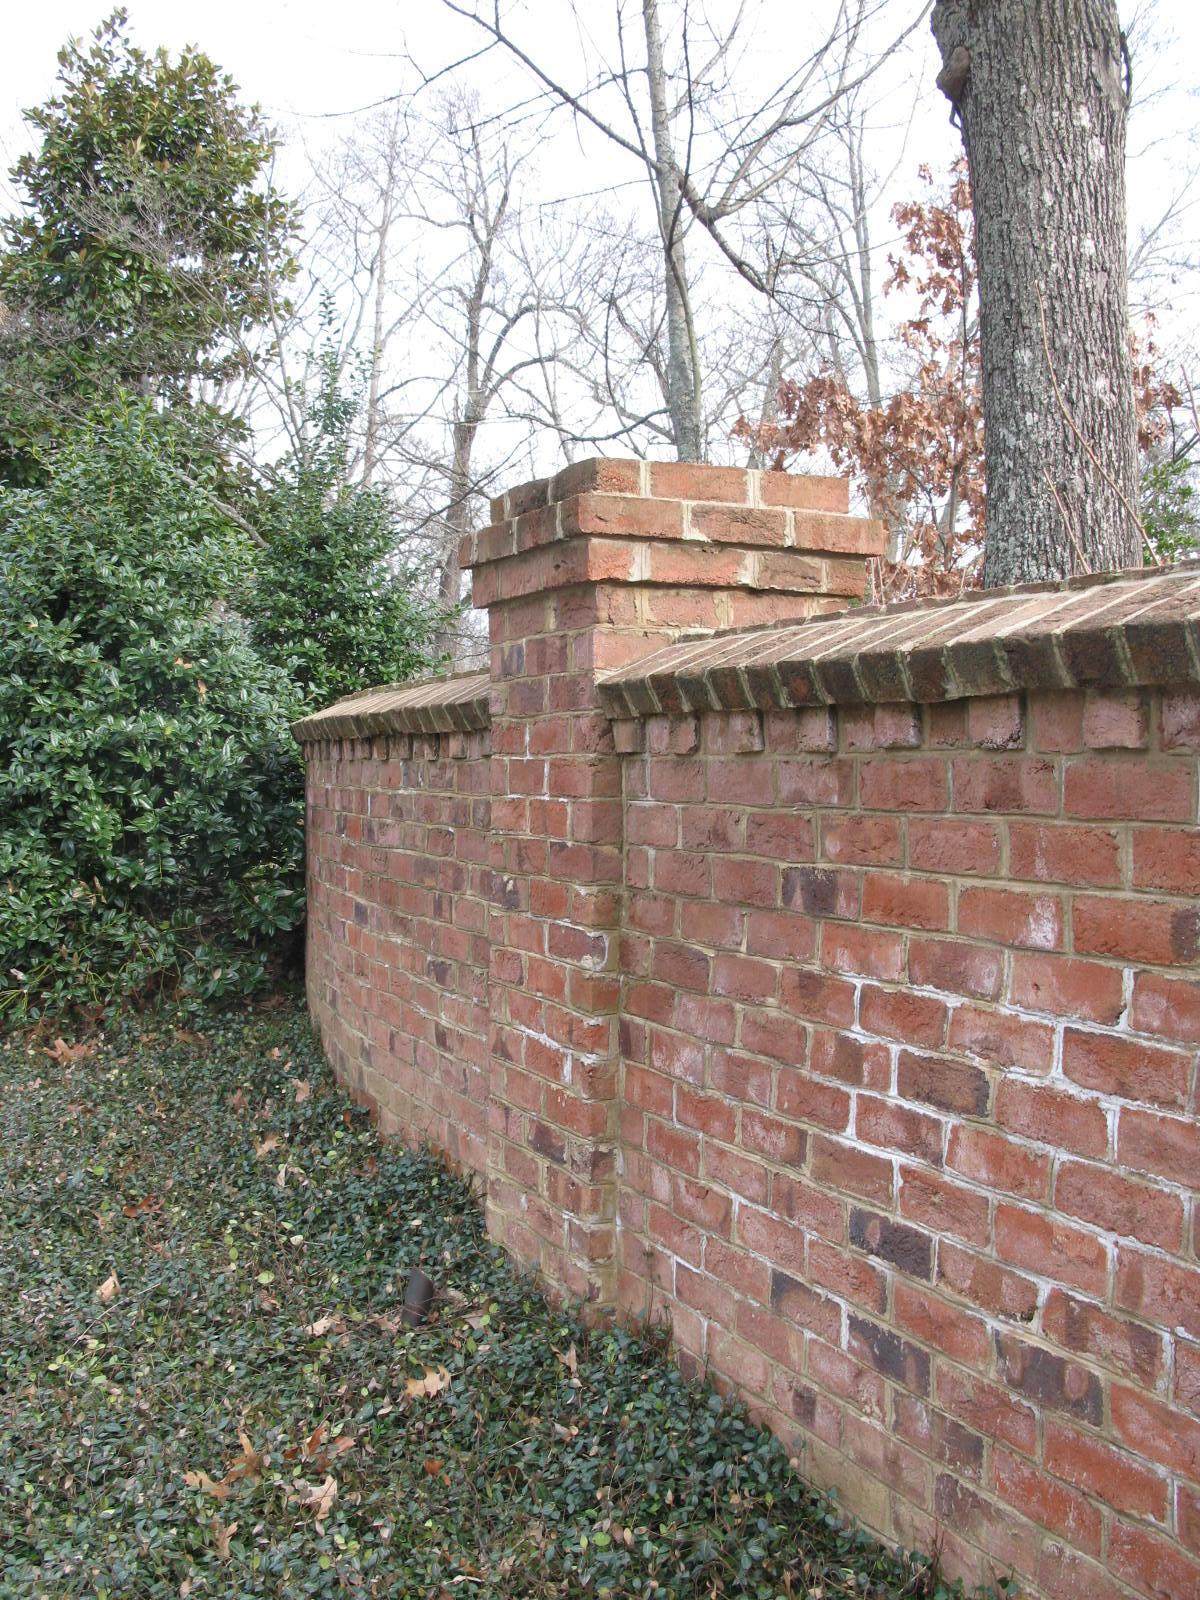 Fence Brick Wall Design : Brick wall designs images red tile